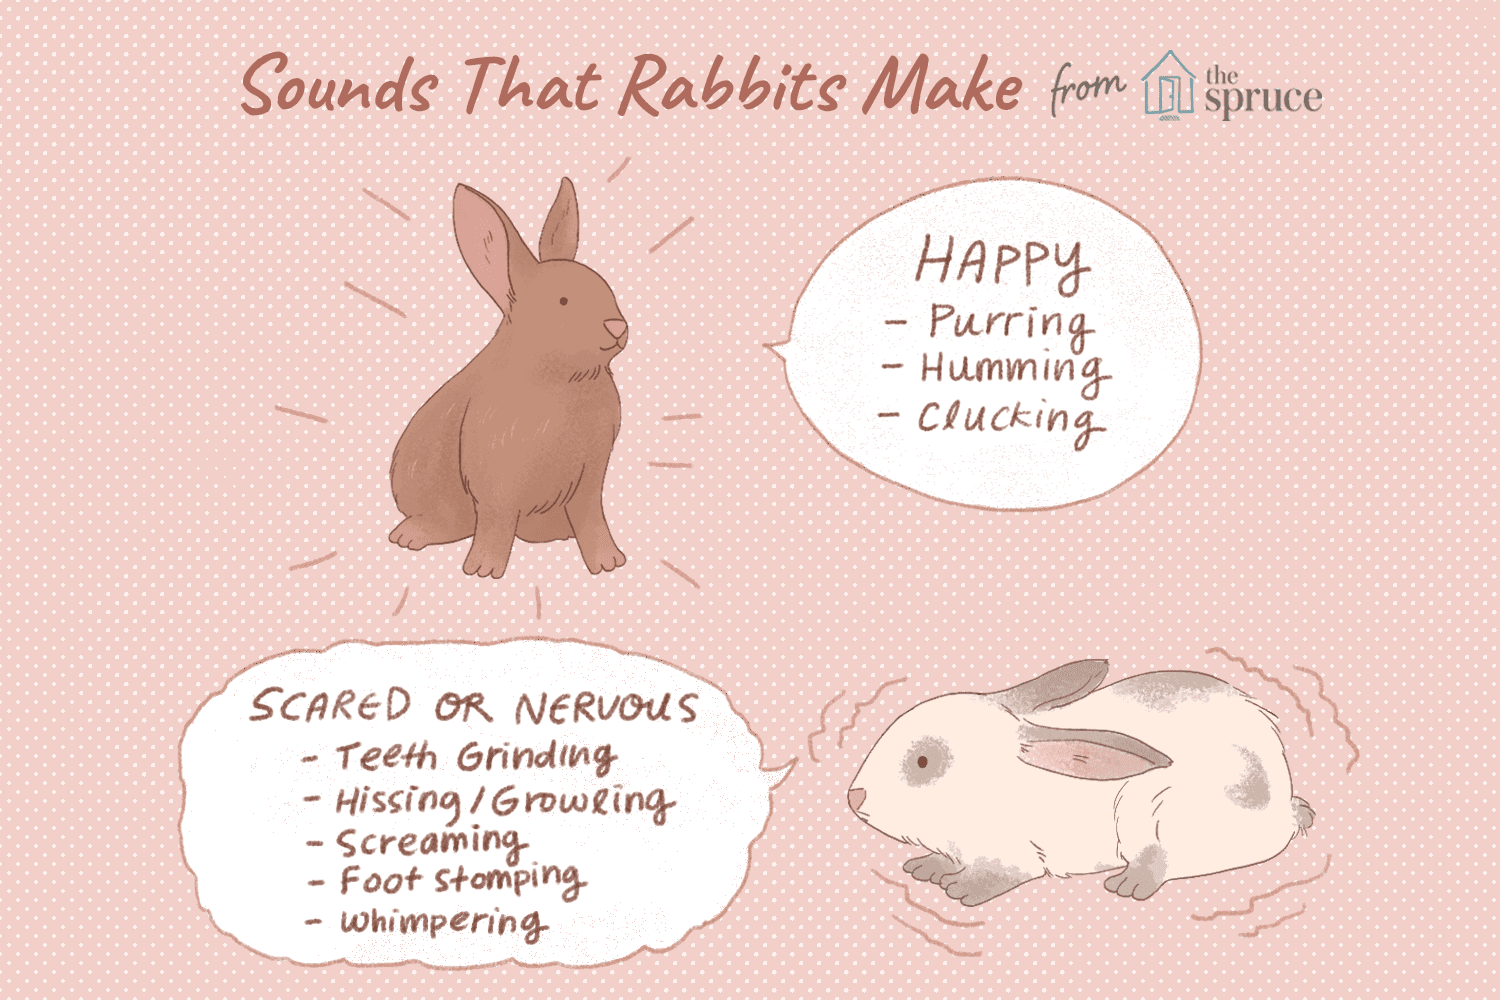 10 Sounds That Rabbits Typically Make How To Build Cuckoo Sound Generator Illustration Of